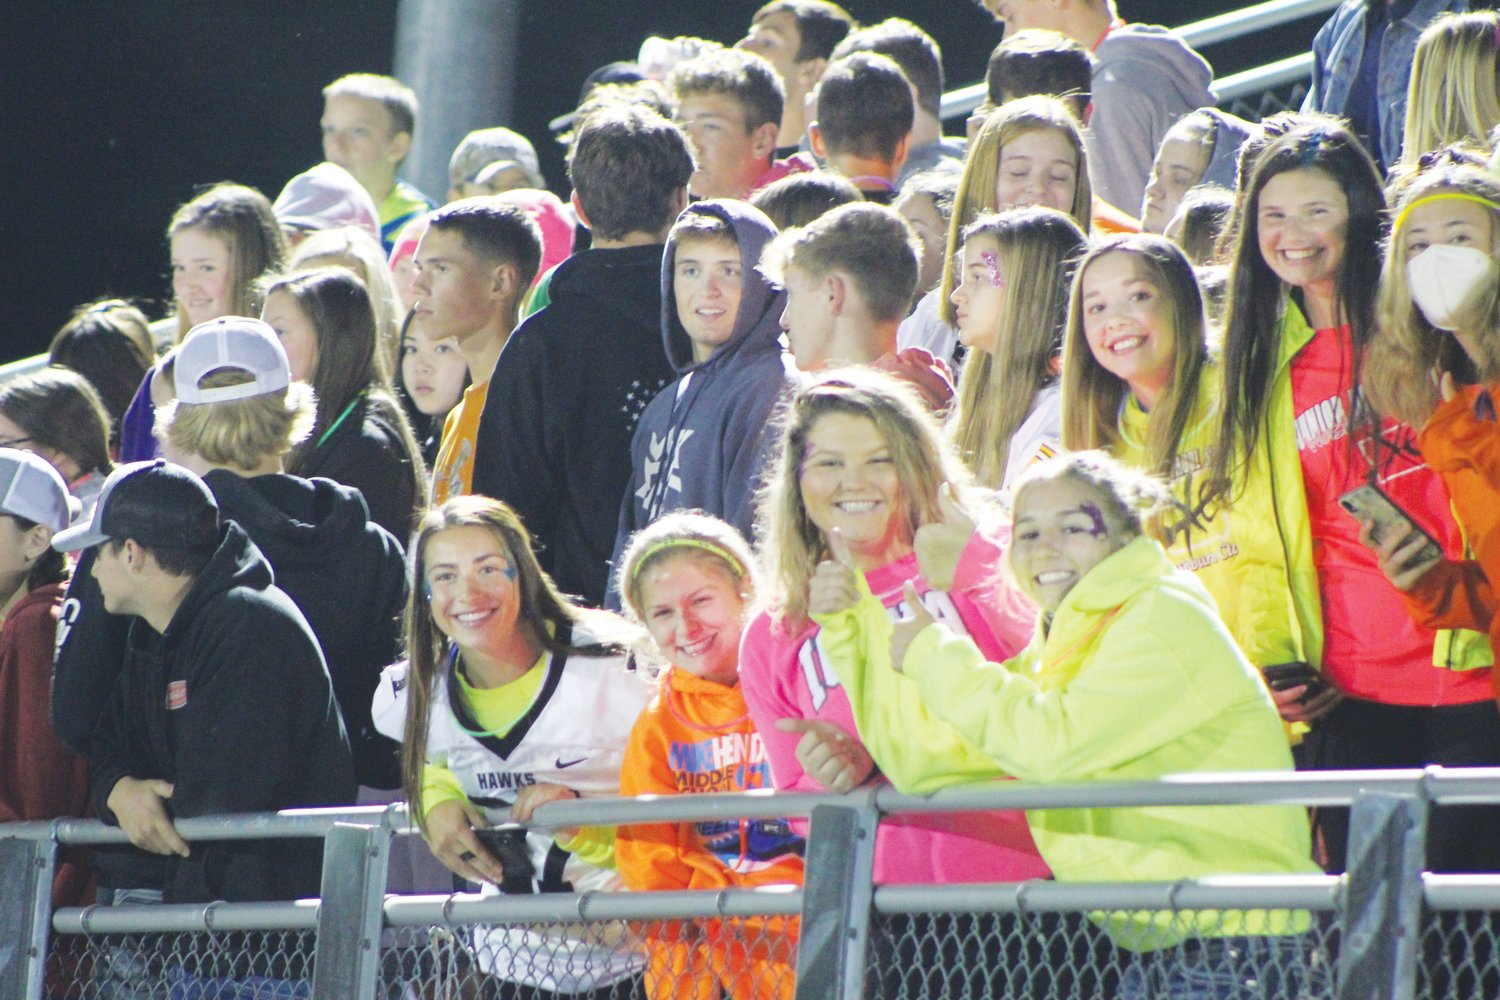 Students watch from the student section at the Mid-Prairie's football game against EBF on Sept. 18. The Mid-Prairie school board decided on Oct. 12 not to impose a mask mandate for spectators at indoor or outdoor athletic events.